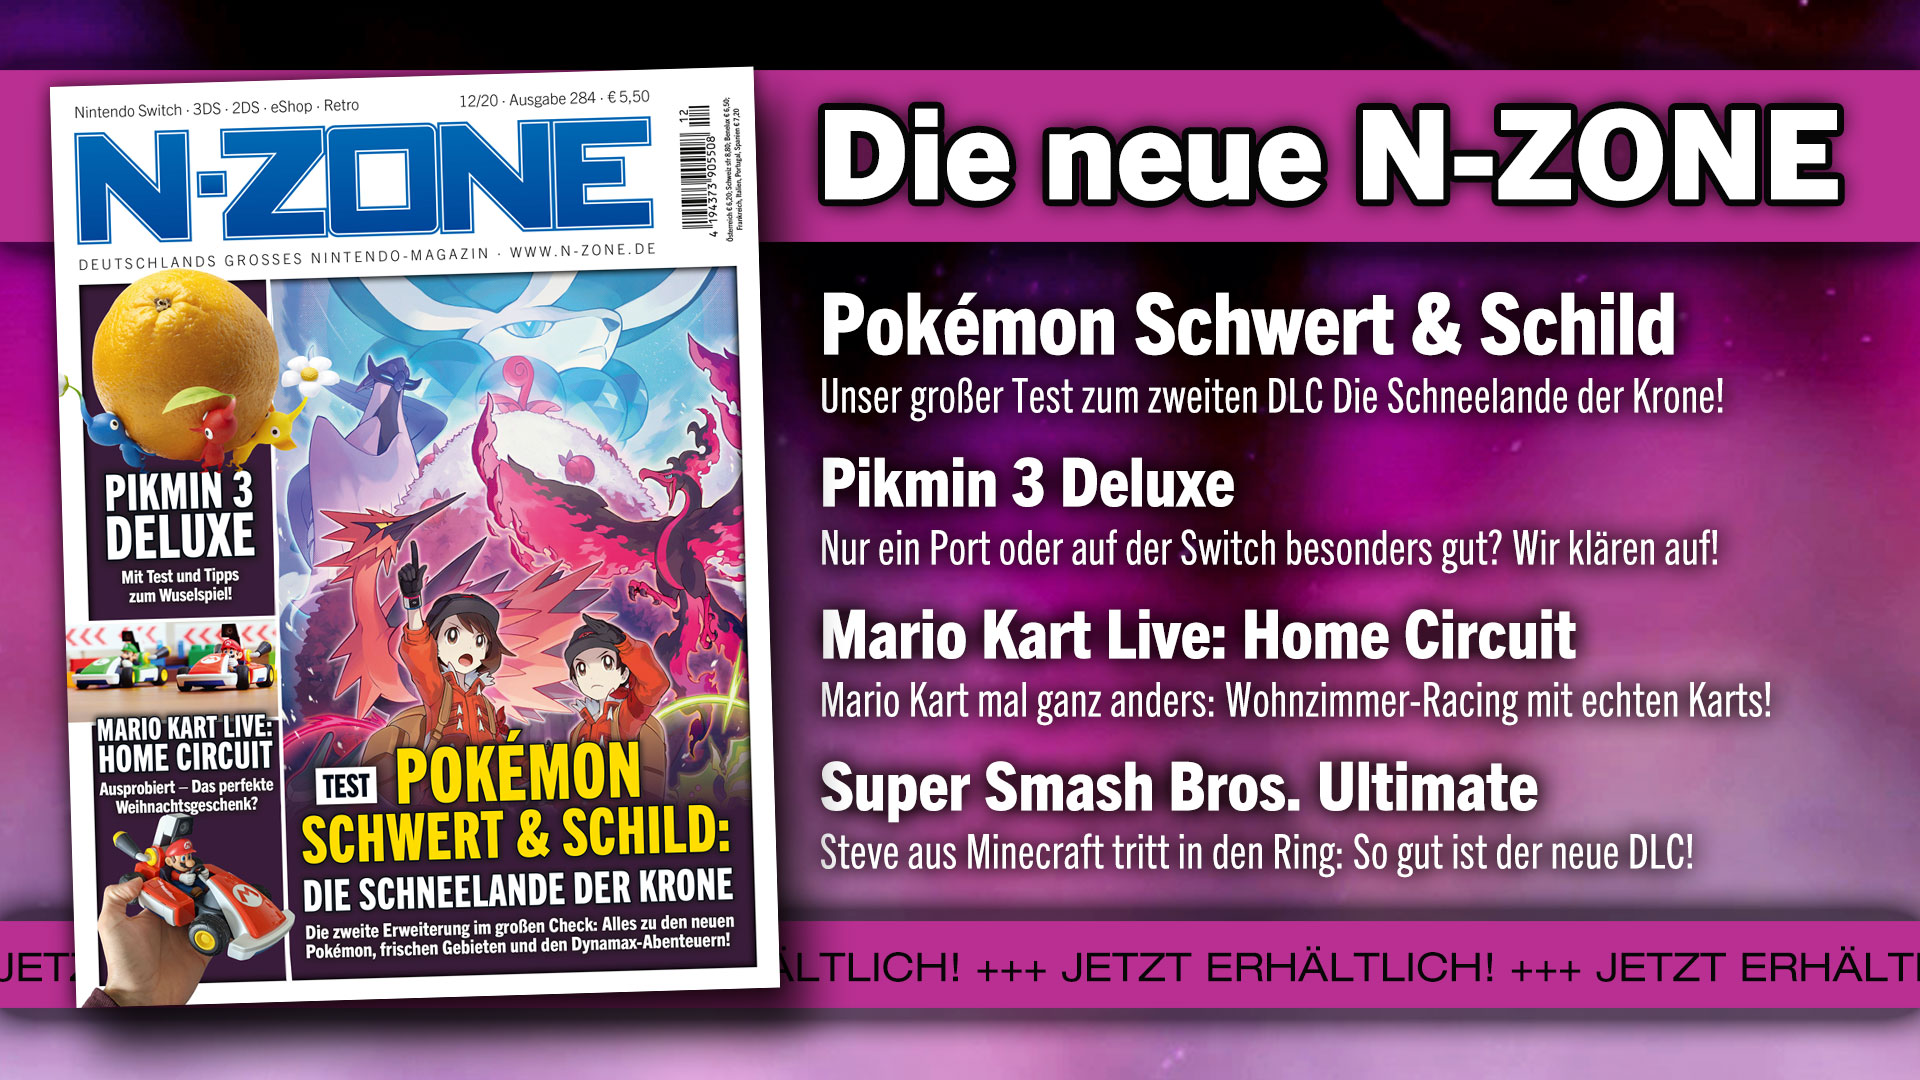 N-ZONE 12/20: Test for the Pokémon DLC and Pikmin 3 and more!